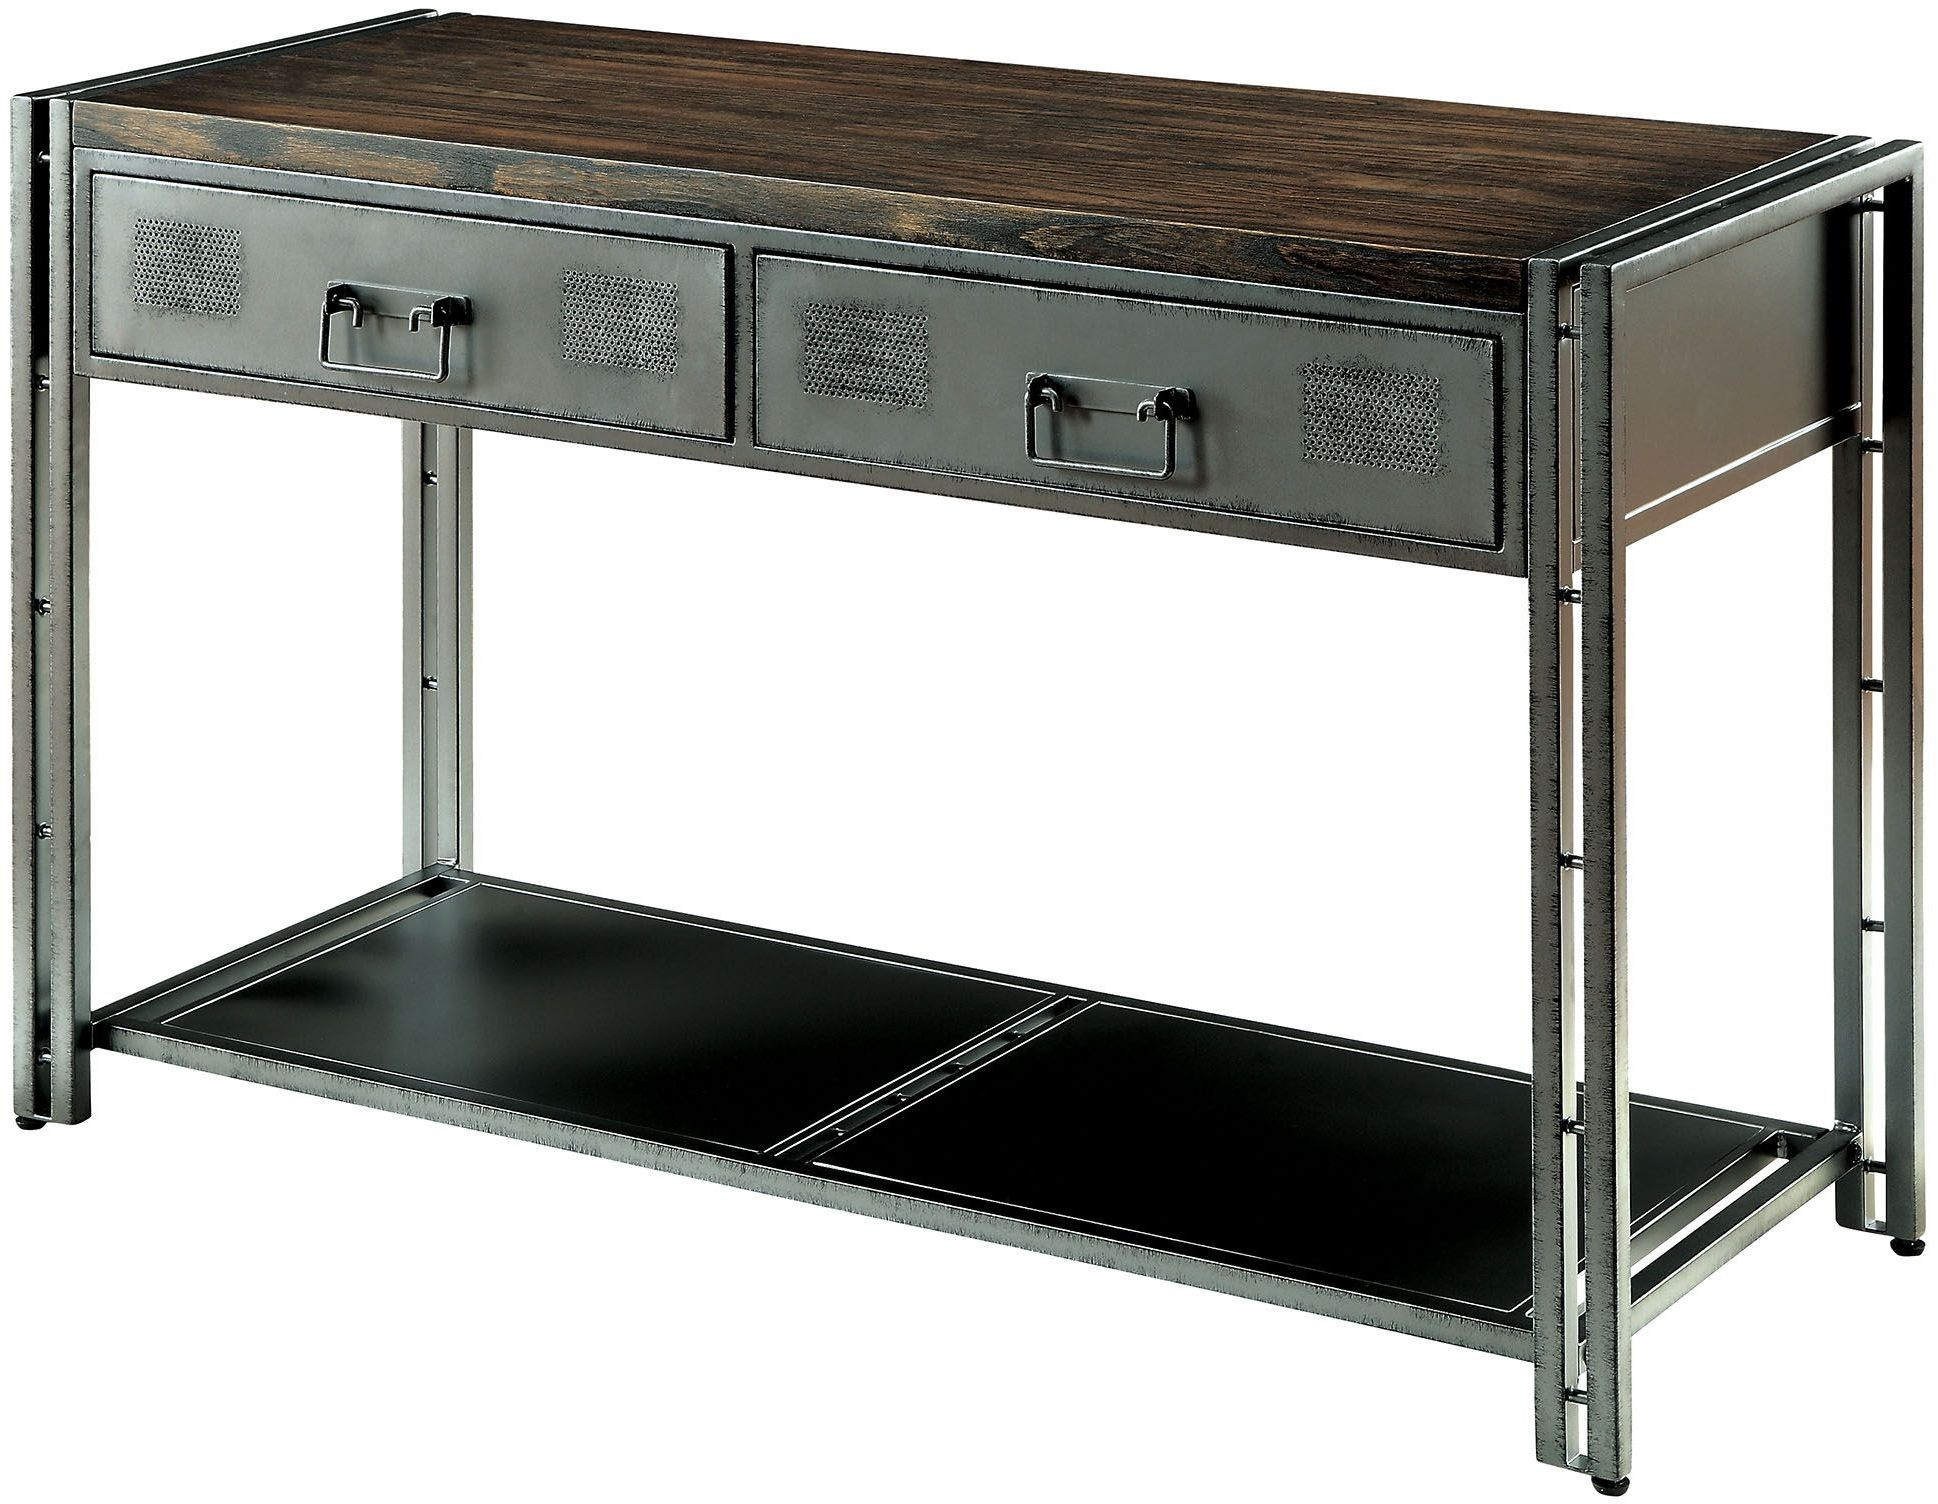 Thurles Gray Sofa Table From Furniture Of America. Merrill Lynch Help Desk. Drafting Tables For Sale. Stainless Steel Prep Table With Sink. Tree Stump Side Table. Pool Table Supplies. Farmhouse Table With Leaves. College Desk Organization. Tv Table